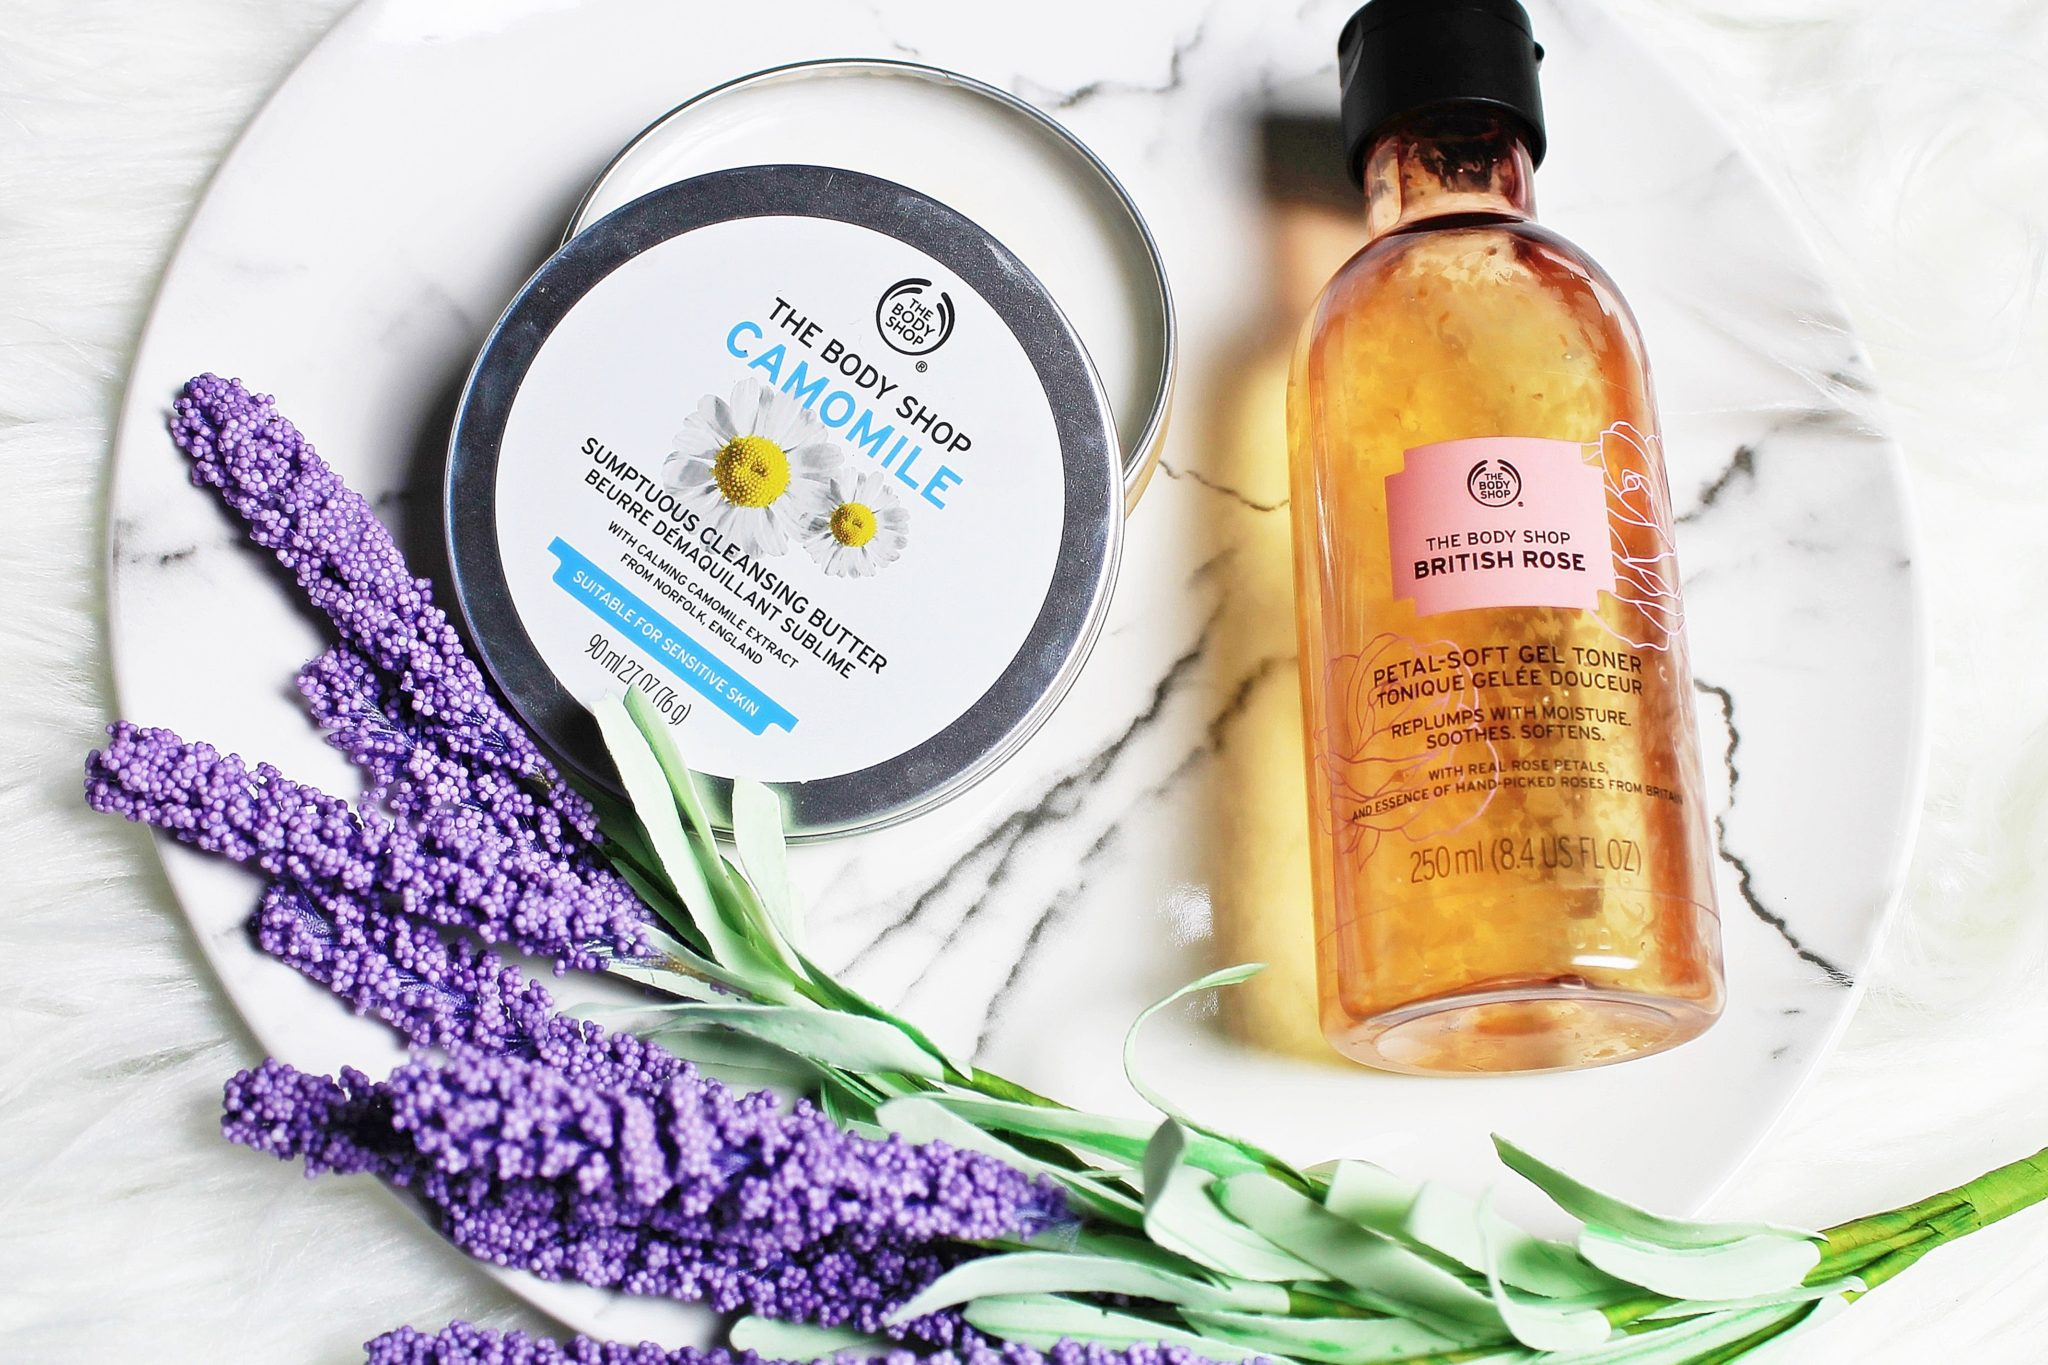 the-body-shop-gel-toner-cleansing-butter-review